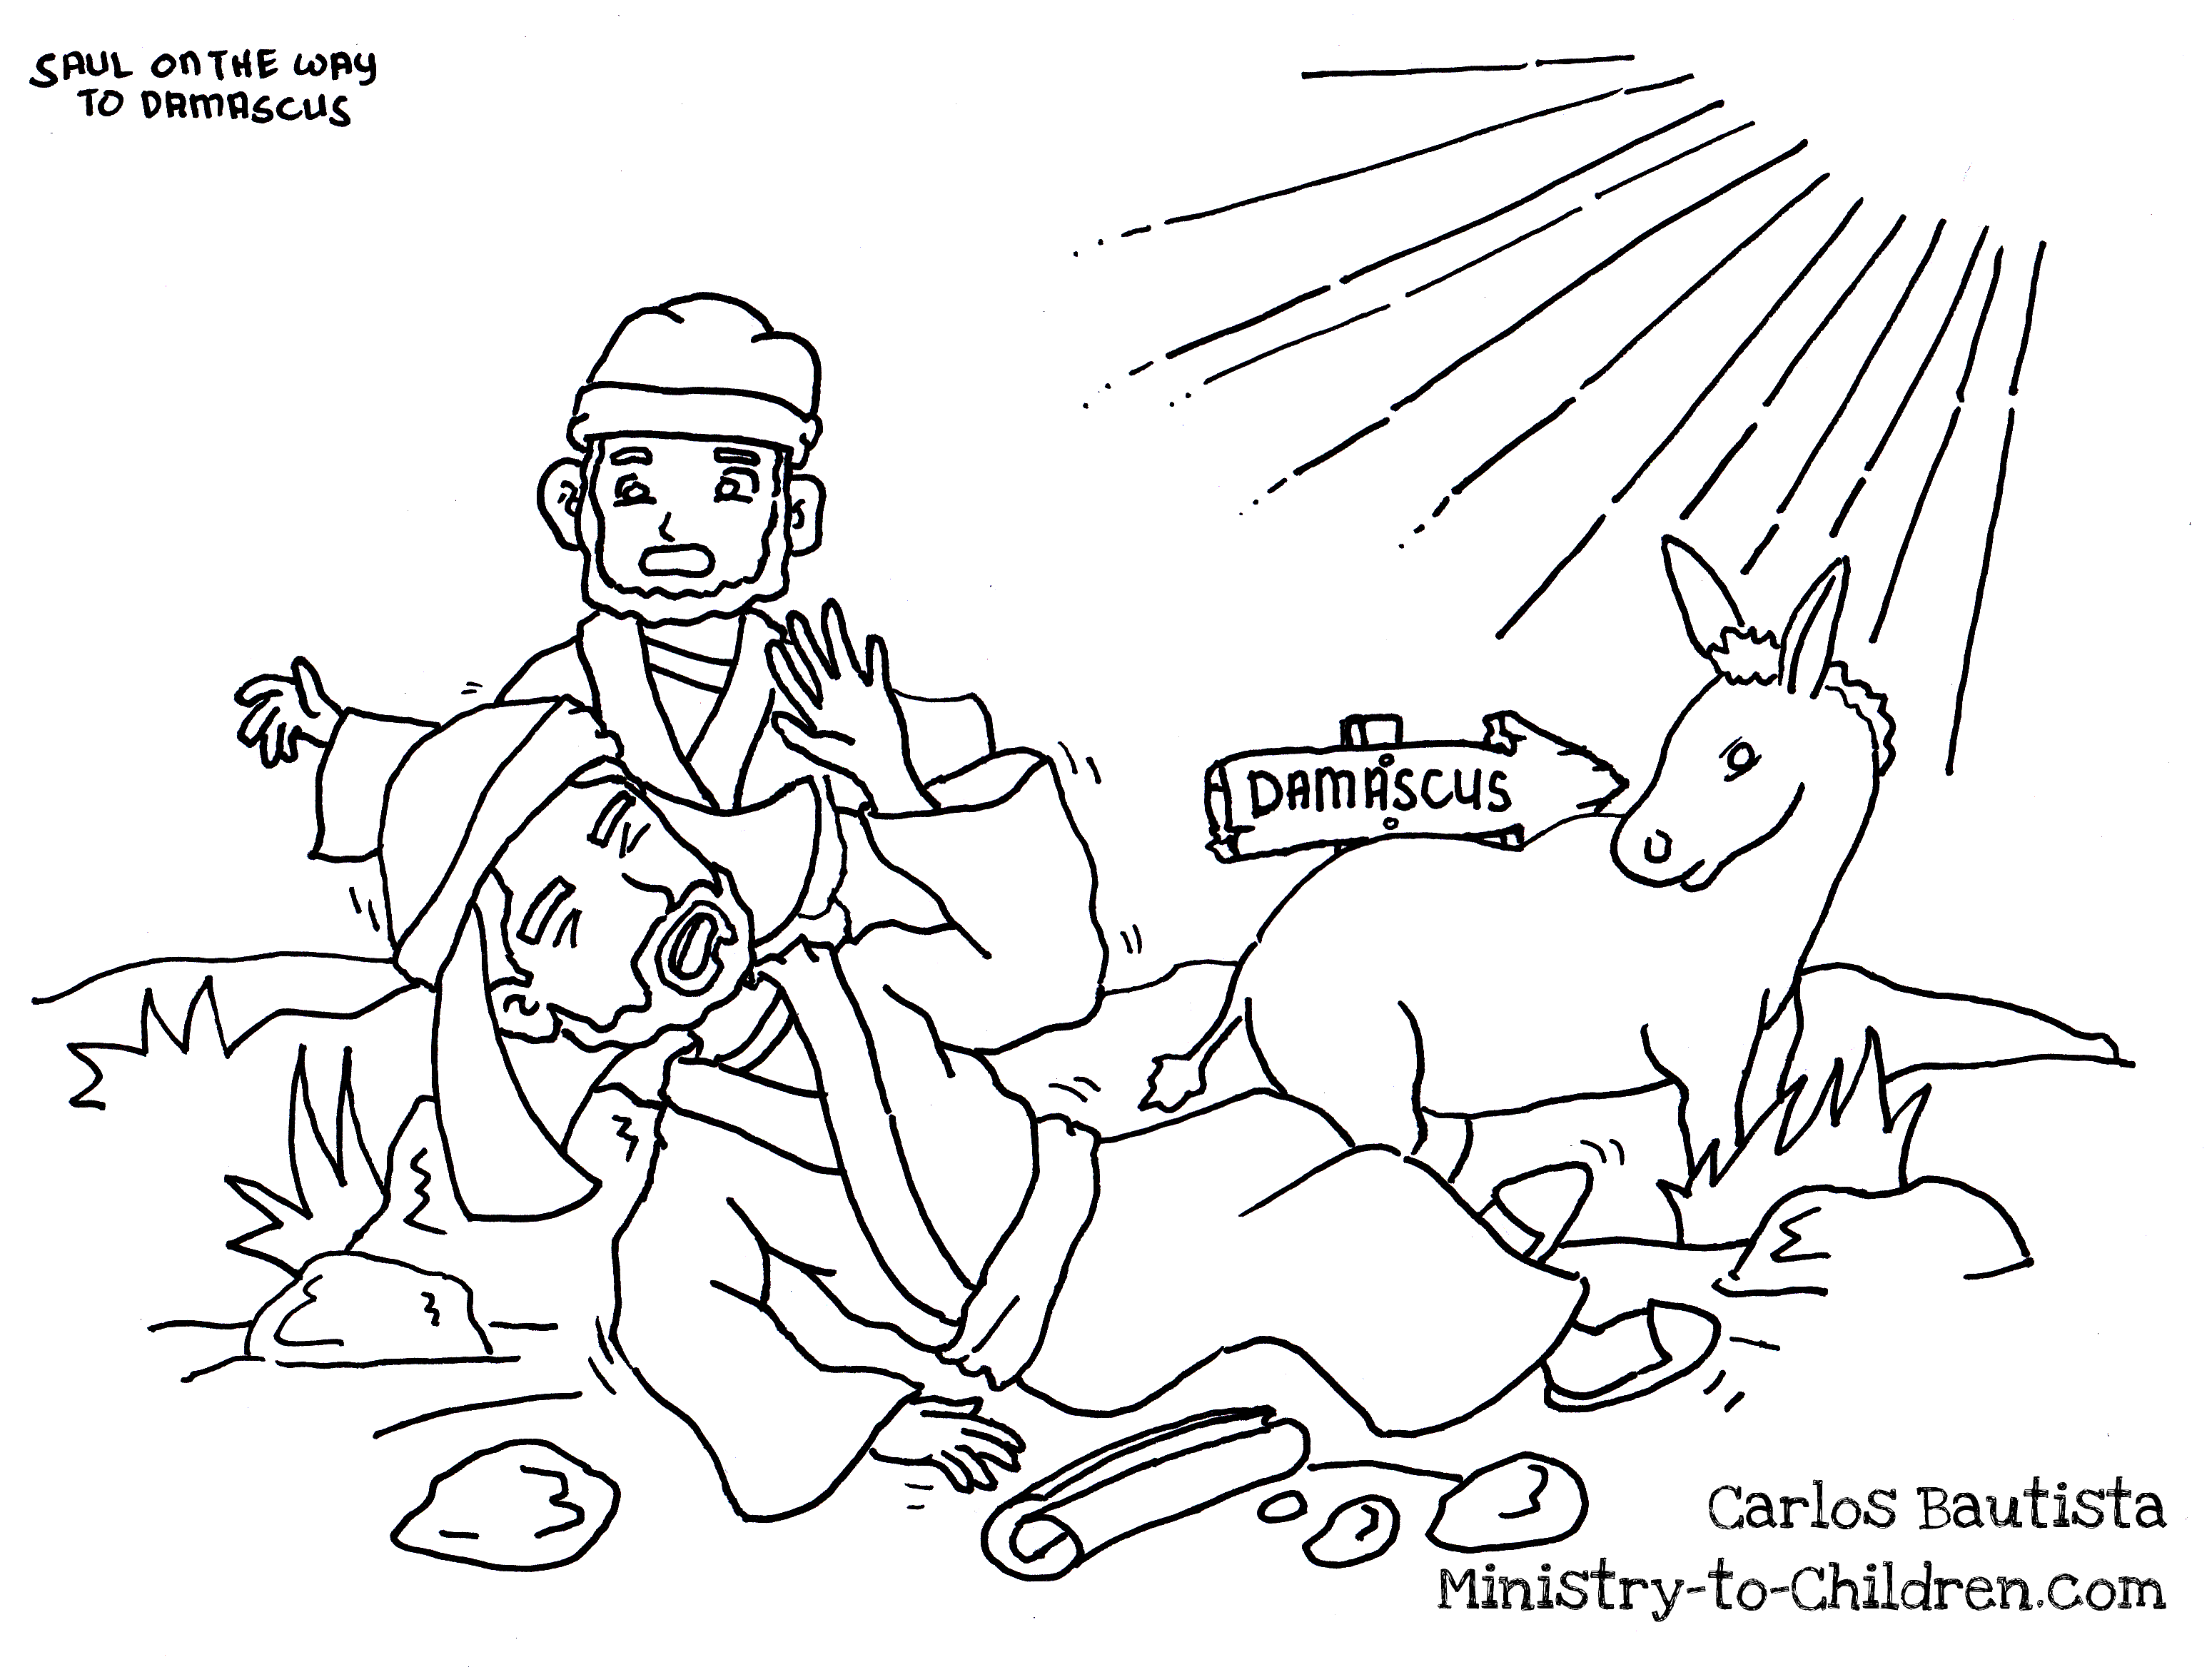 Childrens coloring sheet of saul and ananias - Ananias And Saul Coloring Pages Coloring Pages For All Ages